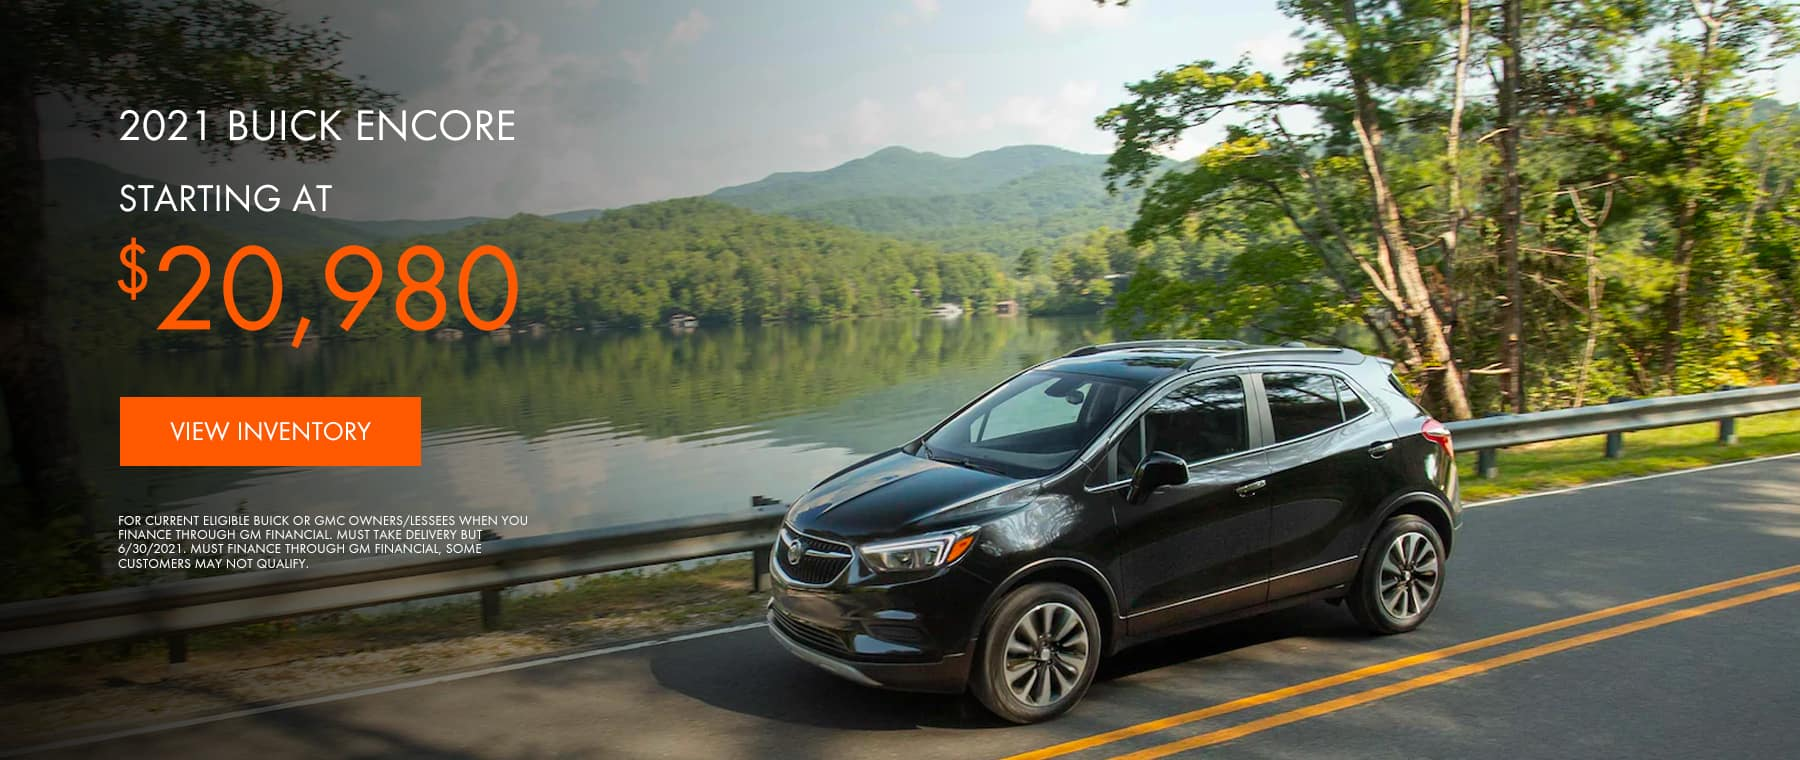 2021 Buick Encore Starting at $2098